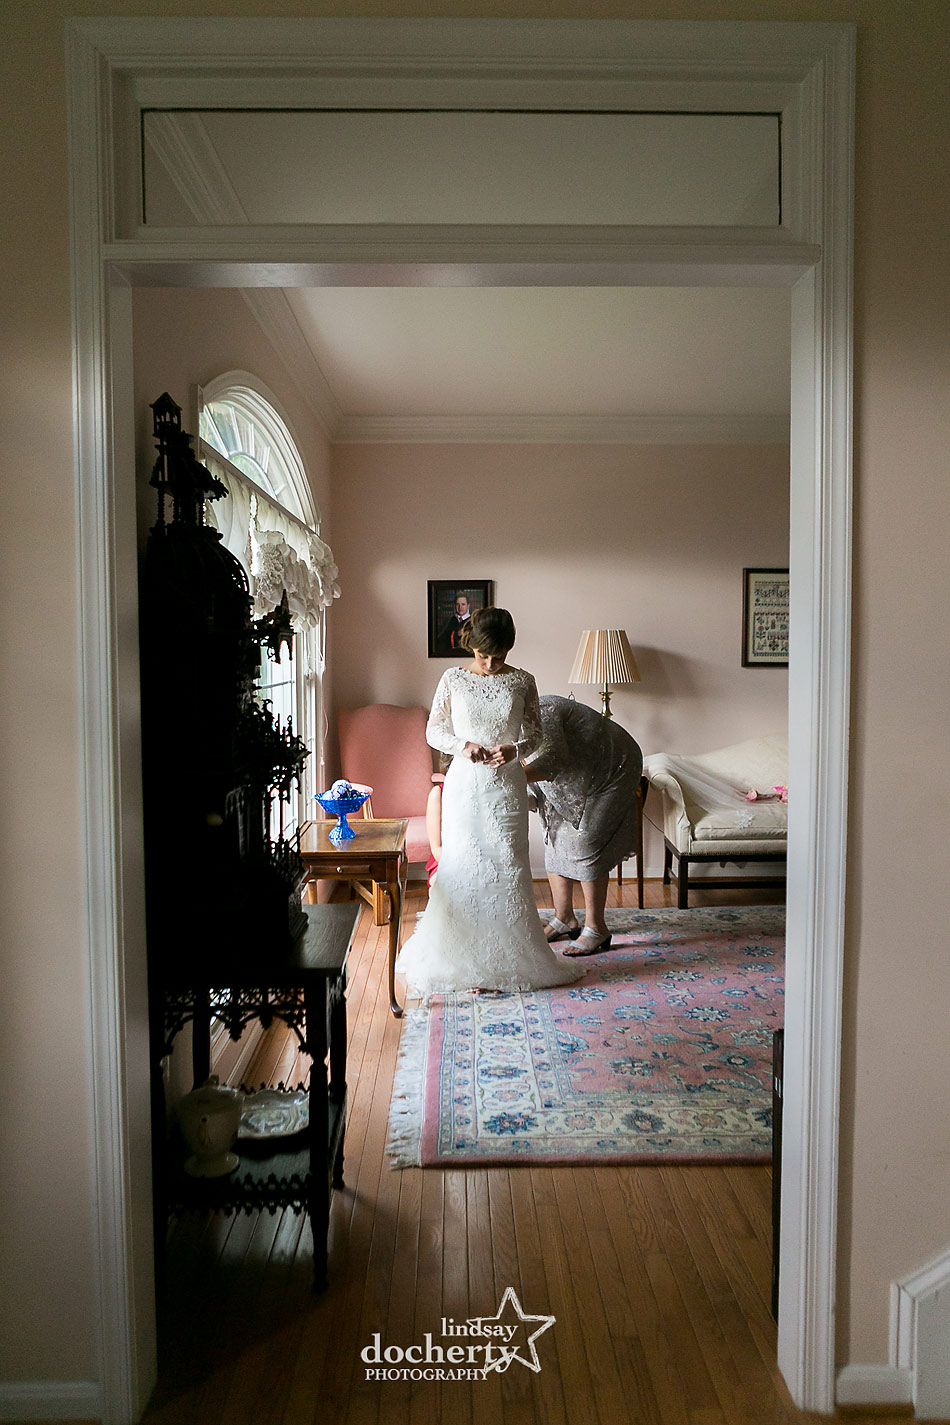 bride in long sleeved dress getting ready at home the morning of the wedding